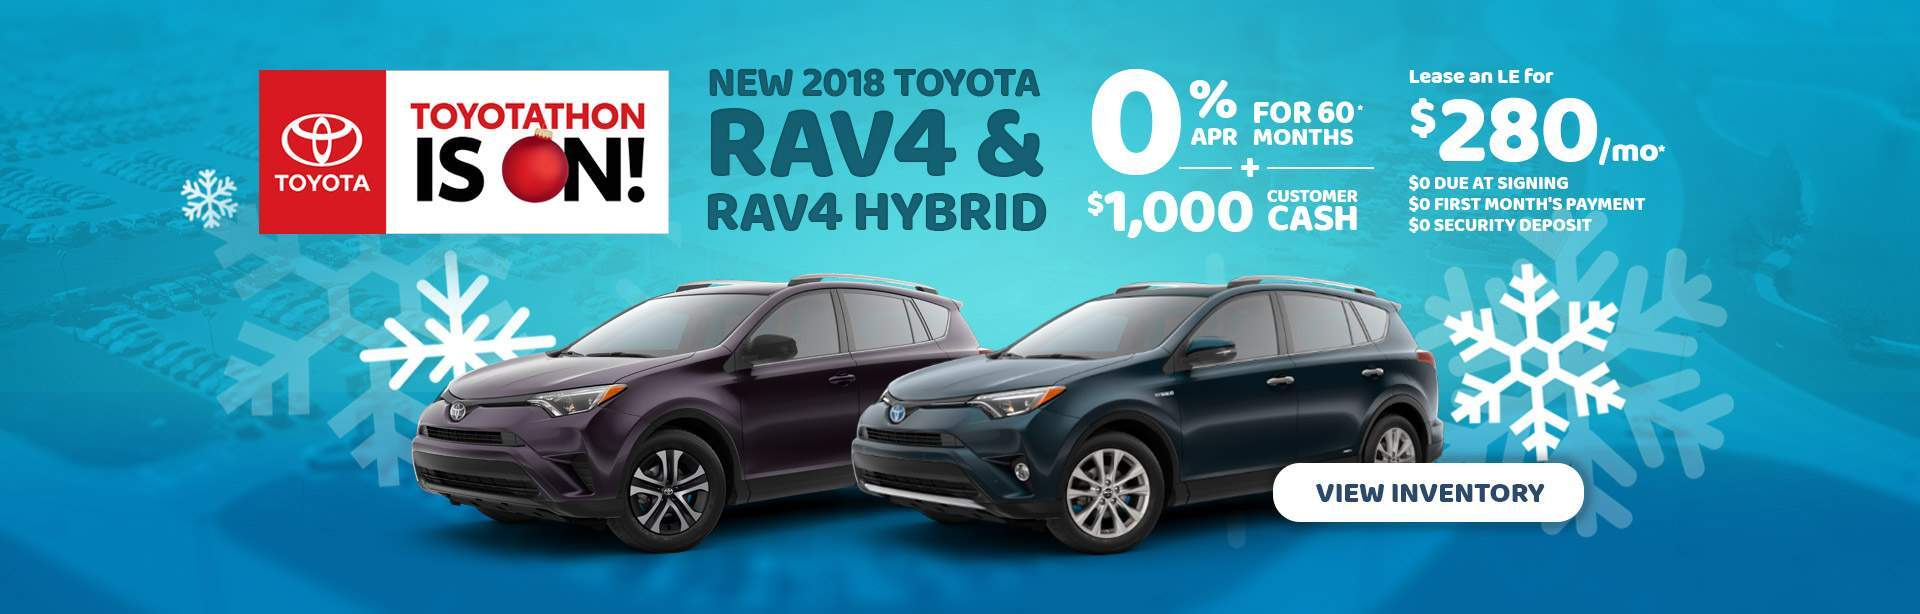 2018 Rav4 and Rav4 Hyrbrid